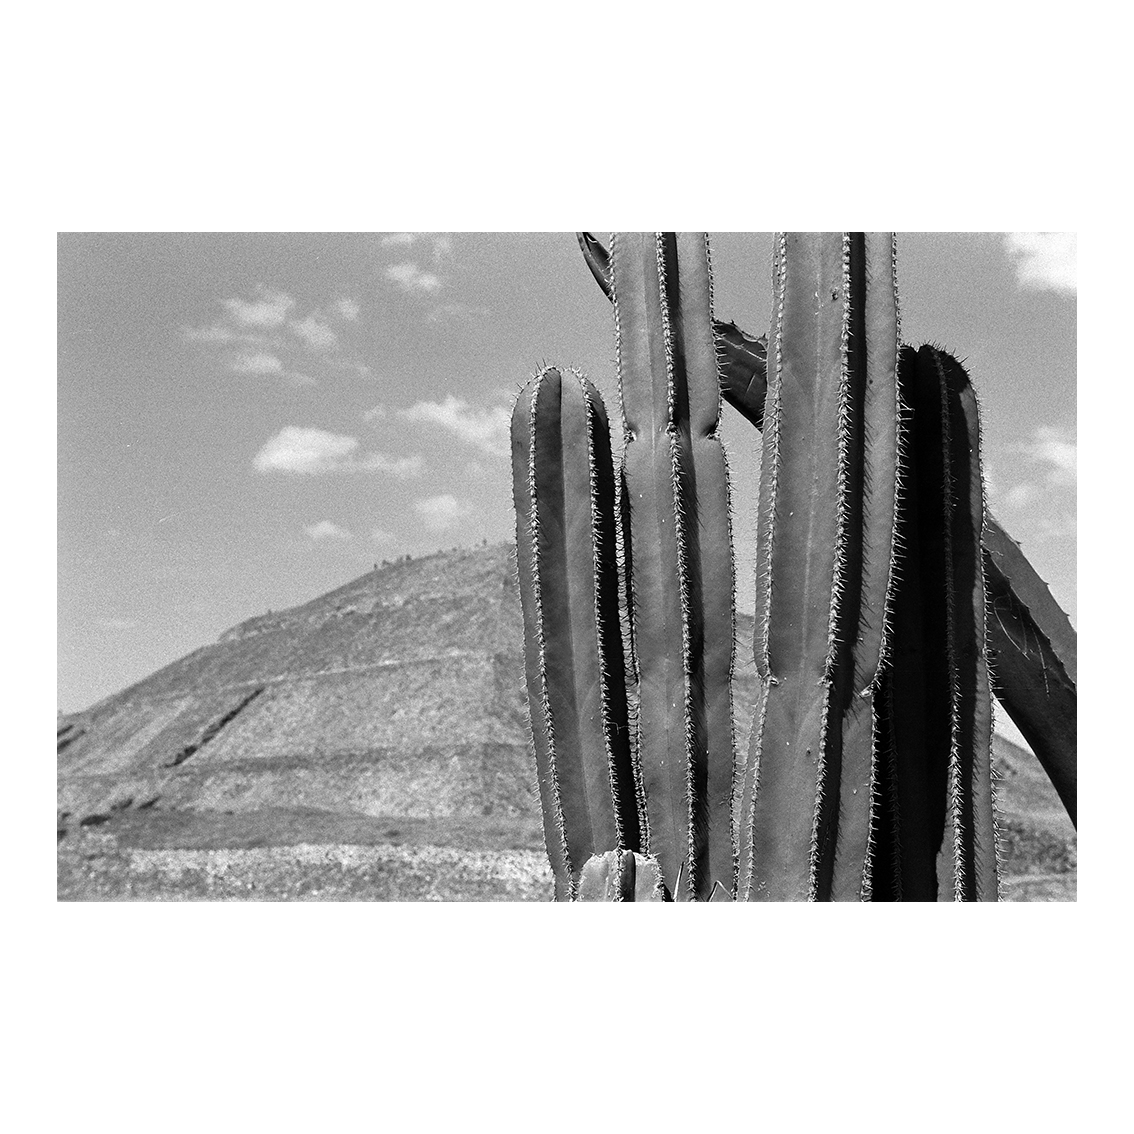 Teotihuacan, Mexique, 2008